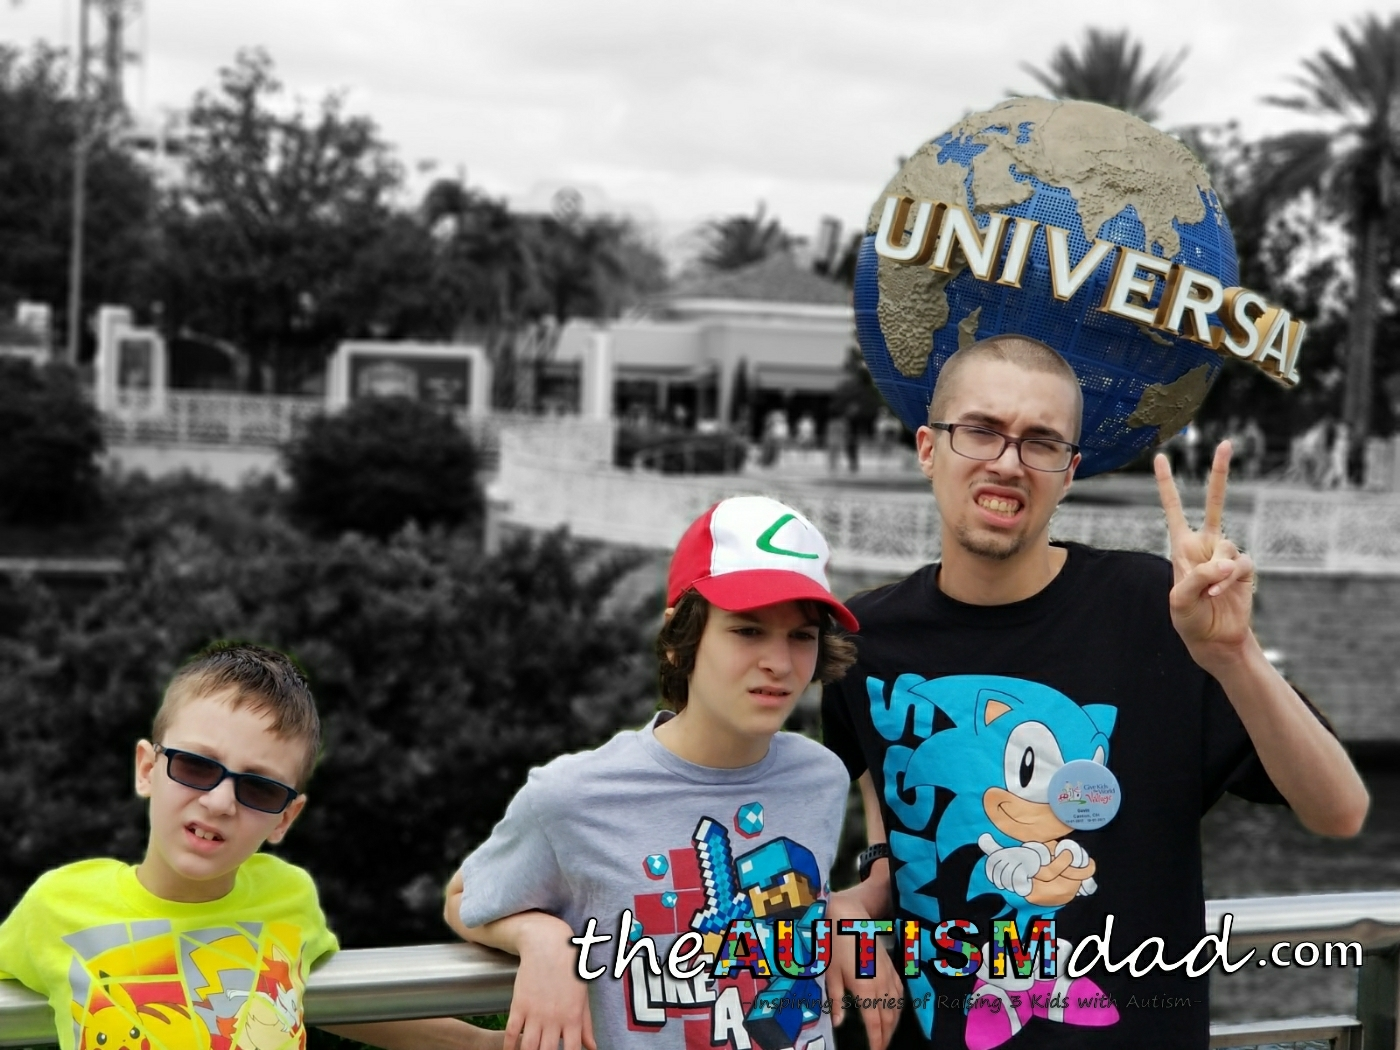 Wishes Can Happen: Pictures from Universal Studios (Day 4)